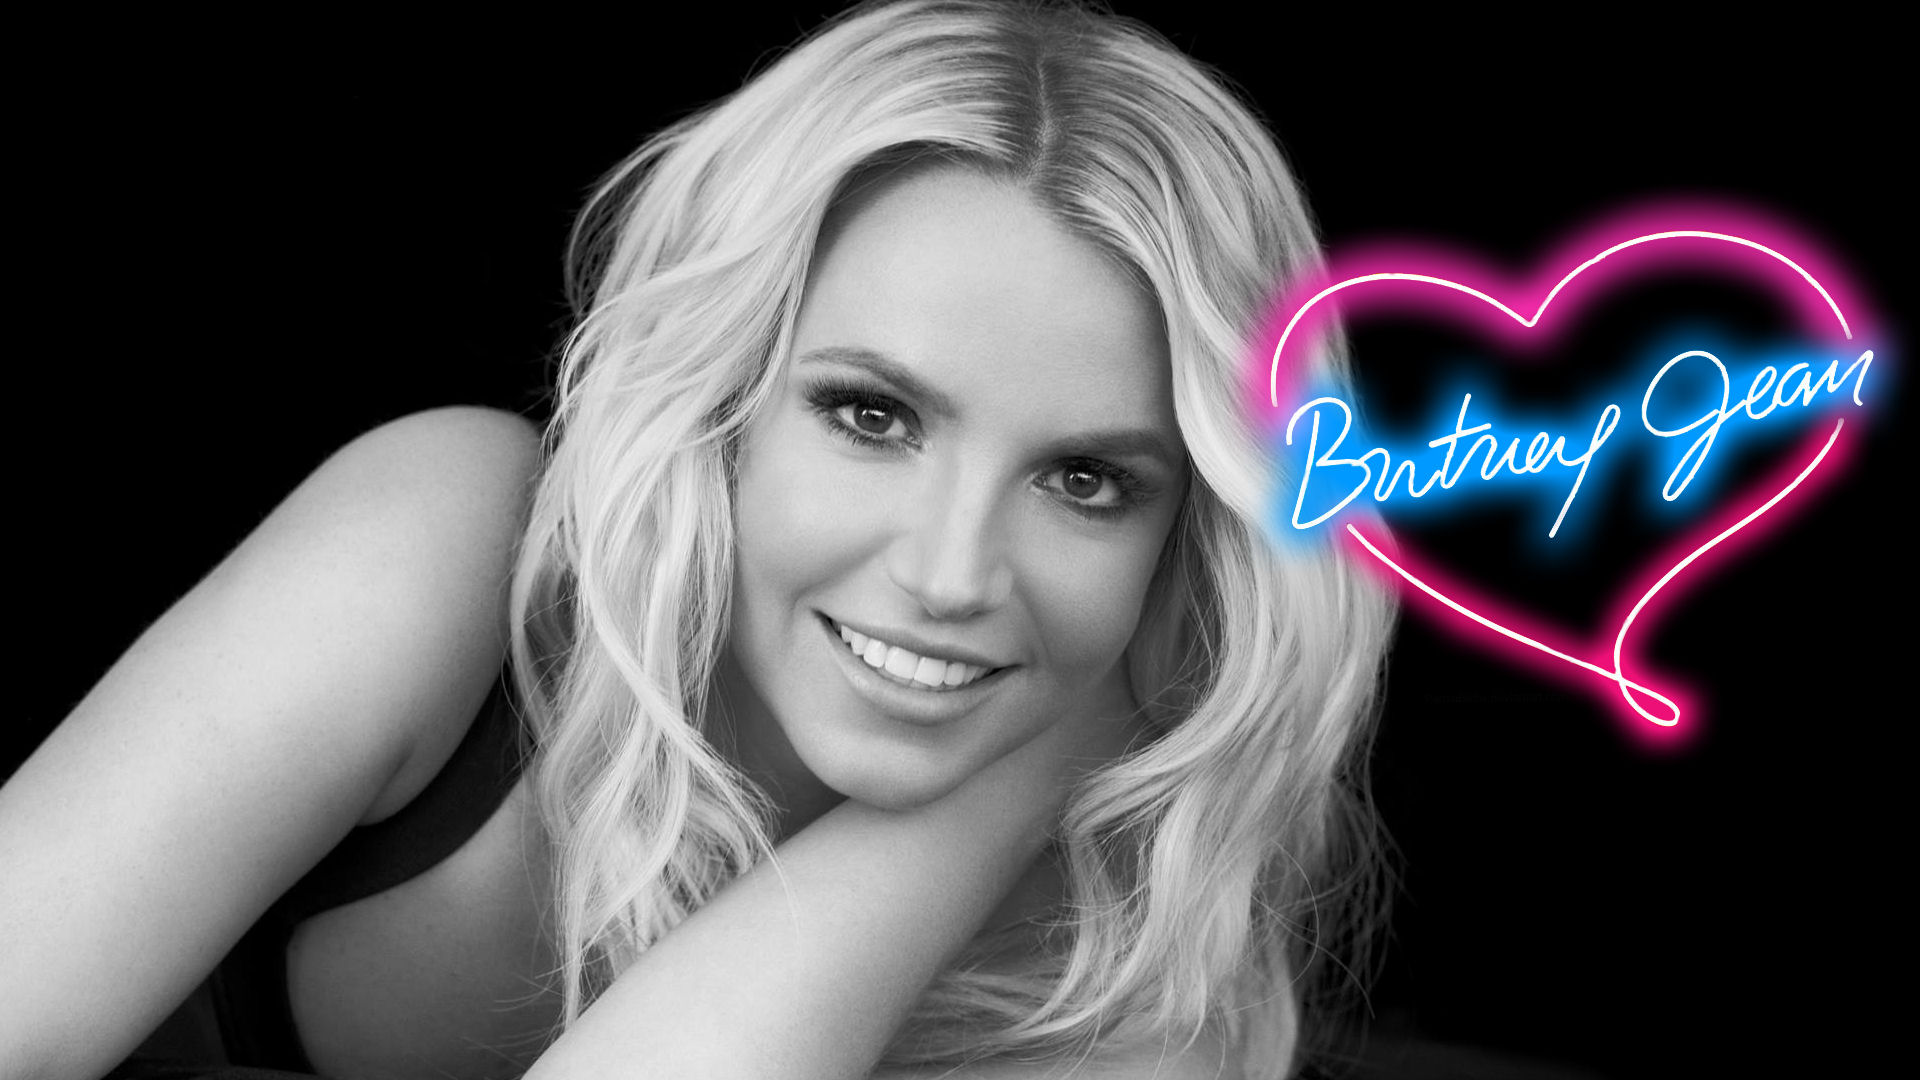 Imagenes Britney Spears: Britney Spears Wallpapers High Resolution And Quality Download